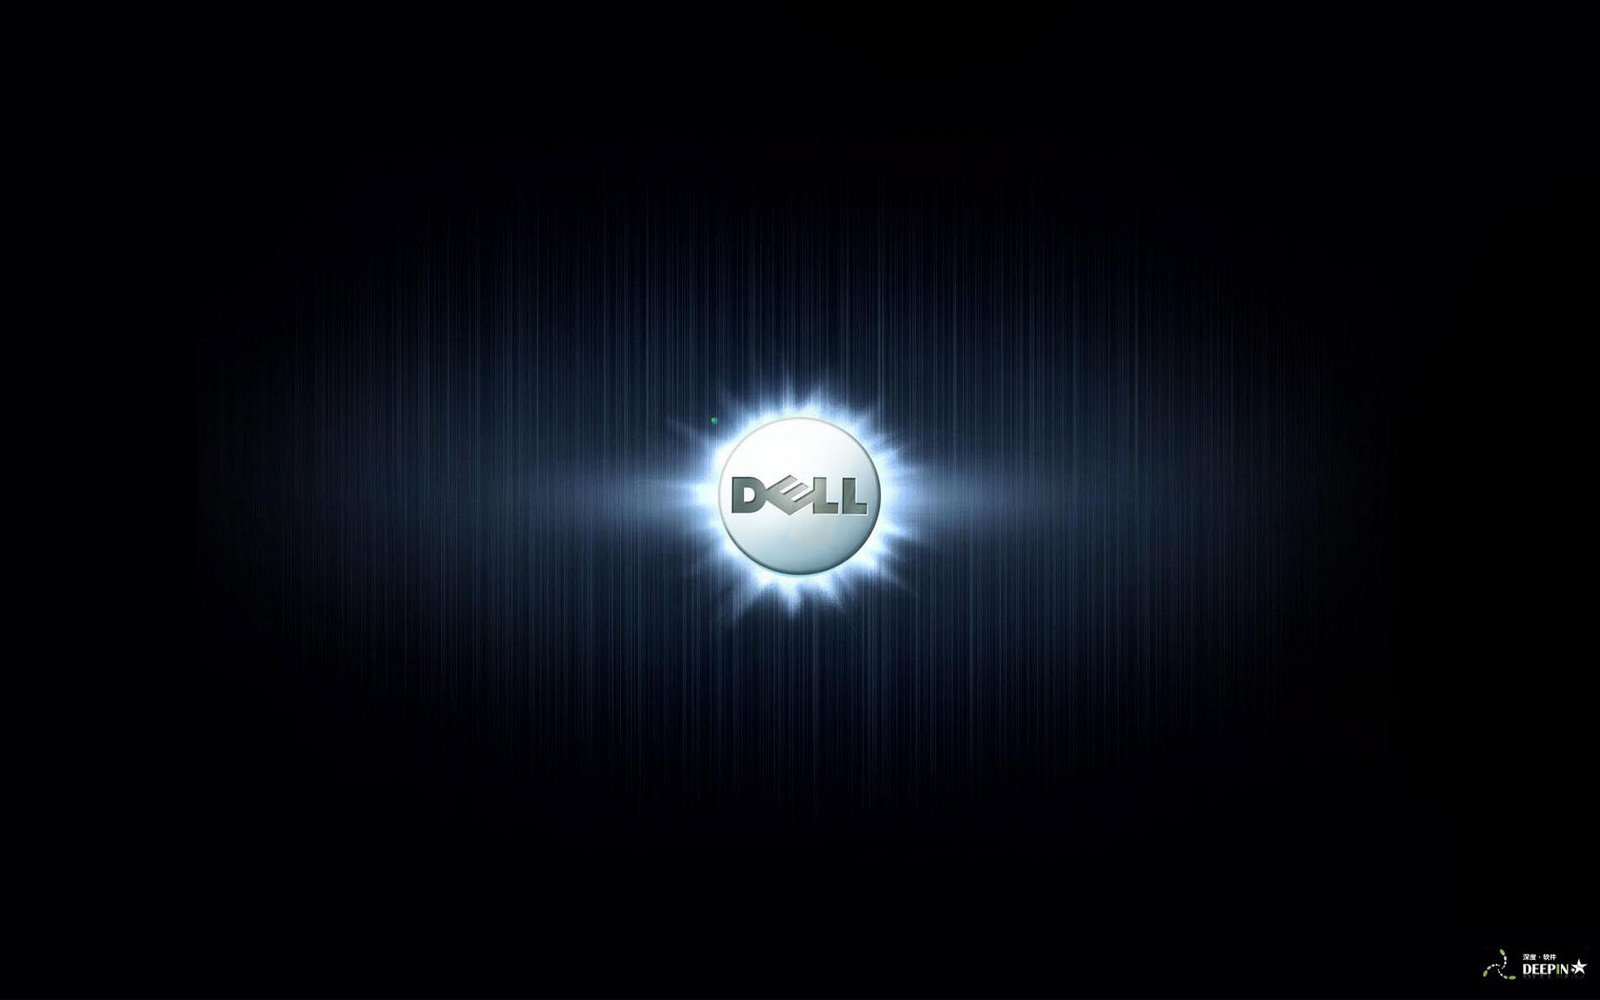 Dell Wallpaper - prolost